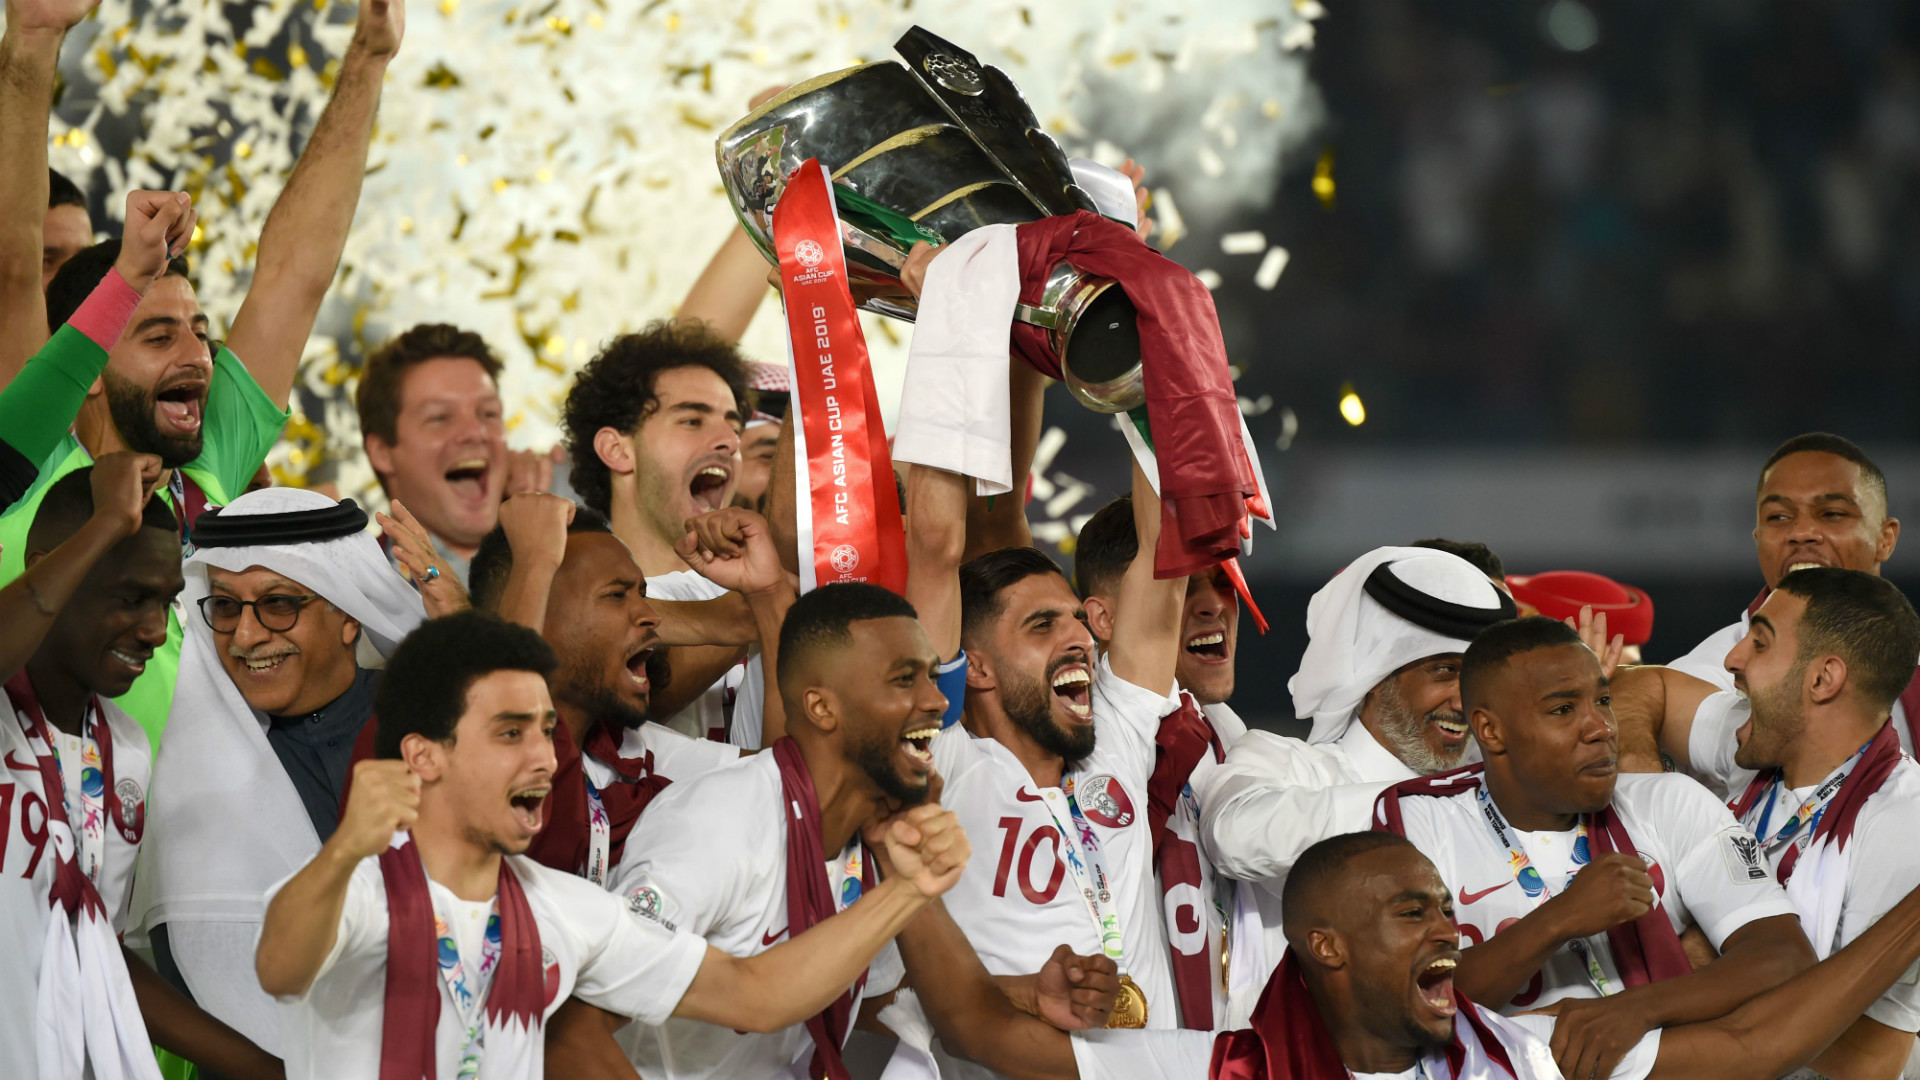 'No tiredness' - Compact 2022 World Cup in Qatar will help players, says Brazil legend Lucio